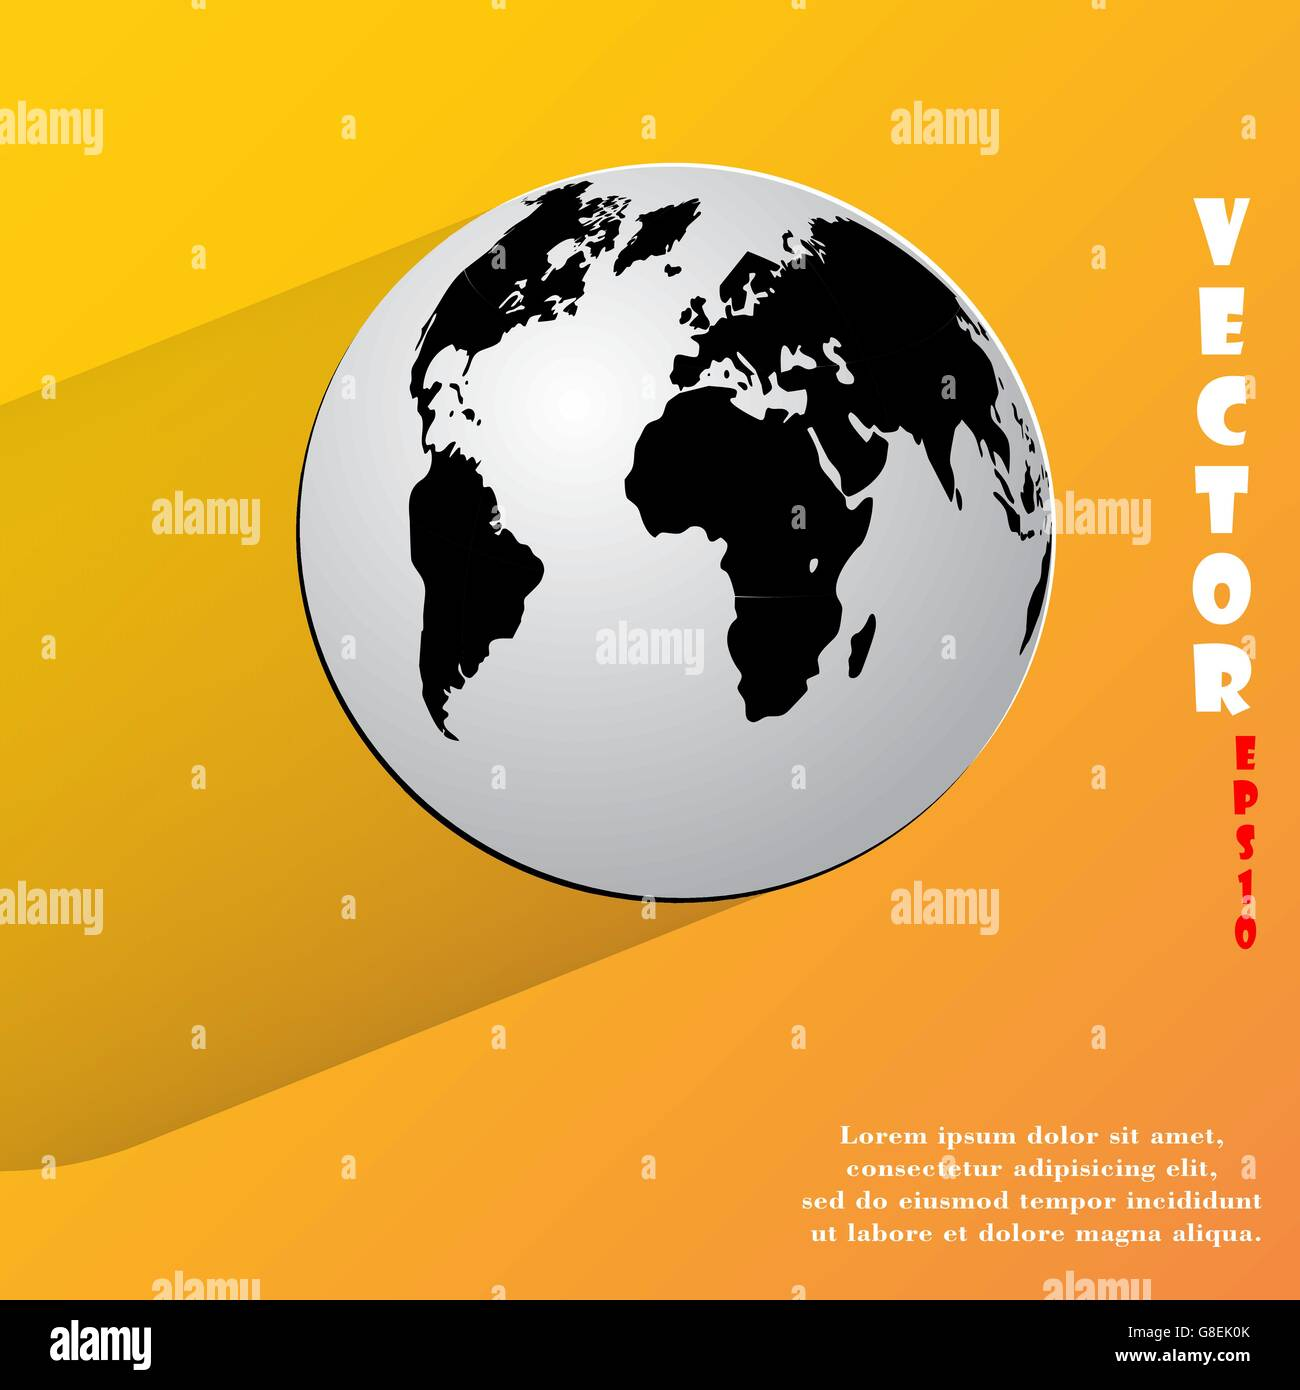 World map vector vectors stock photos world map vector vectors world map web icon flat design vector illustration eps10 stock image gumiabroncs Image collections